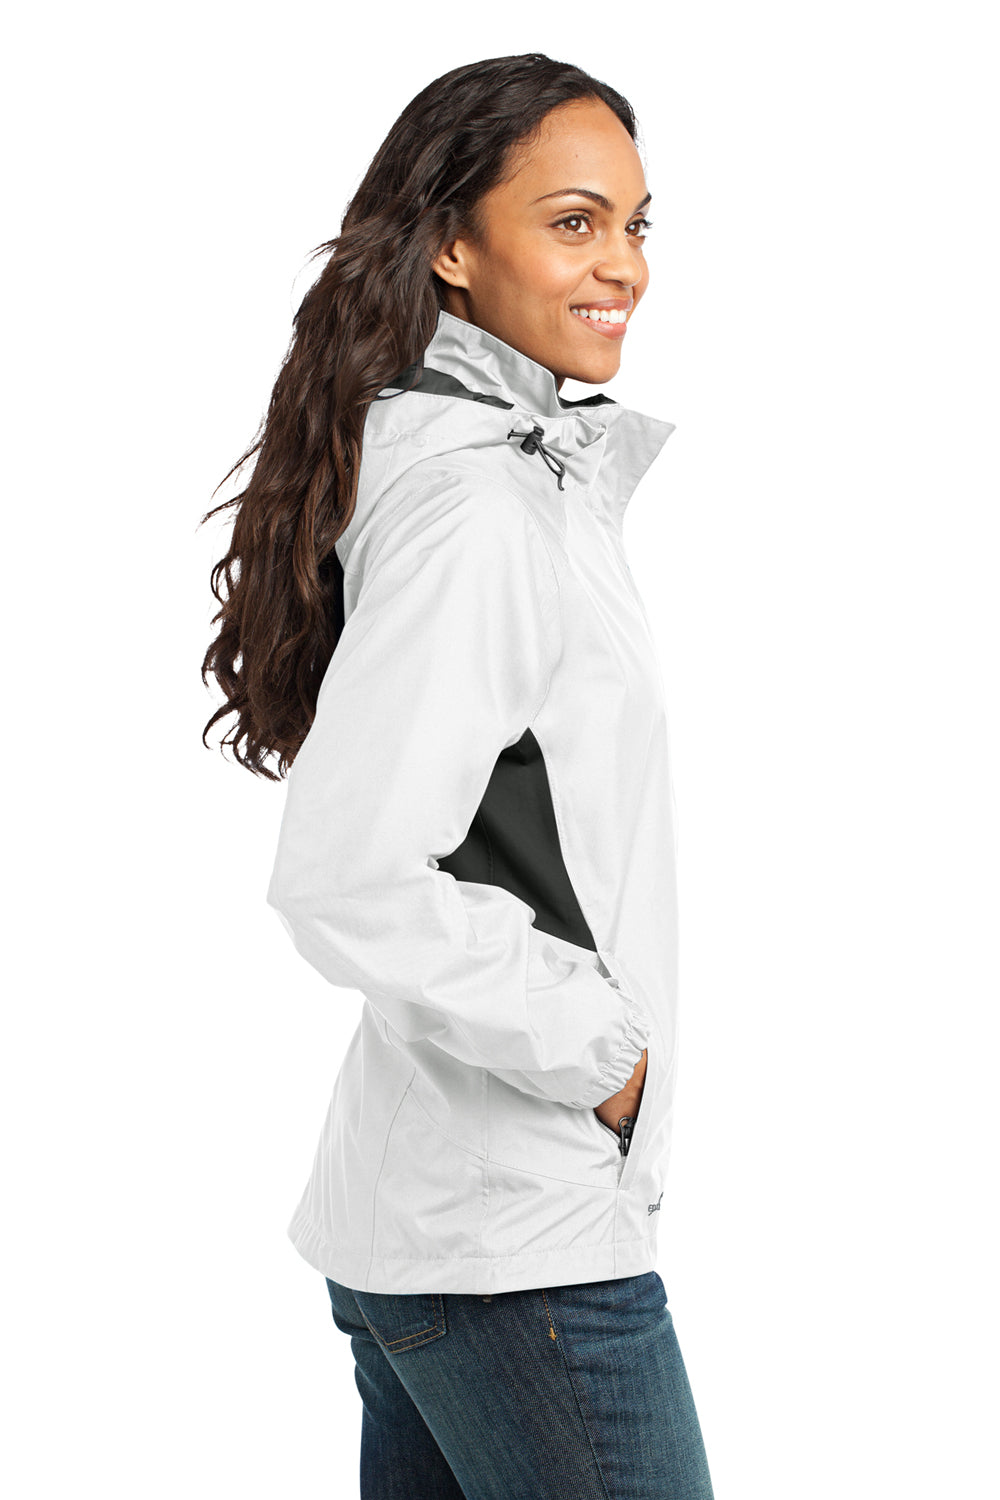 Eddie Bauer EB551 Womens Waterproof Full Zip Hooded Jacket White Side